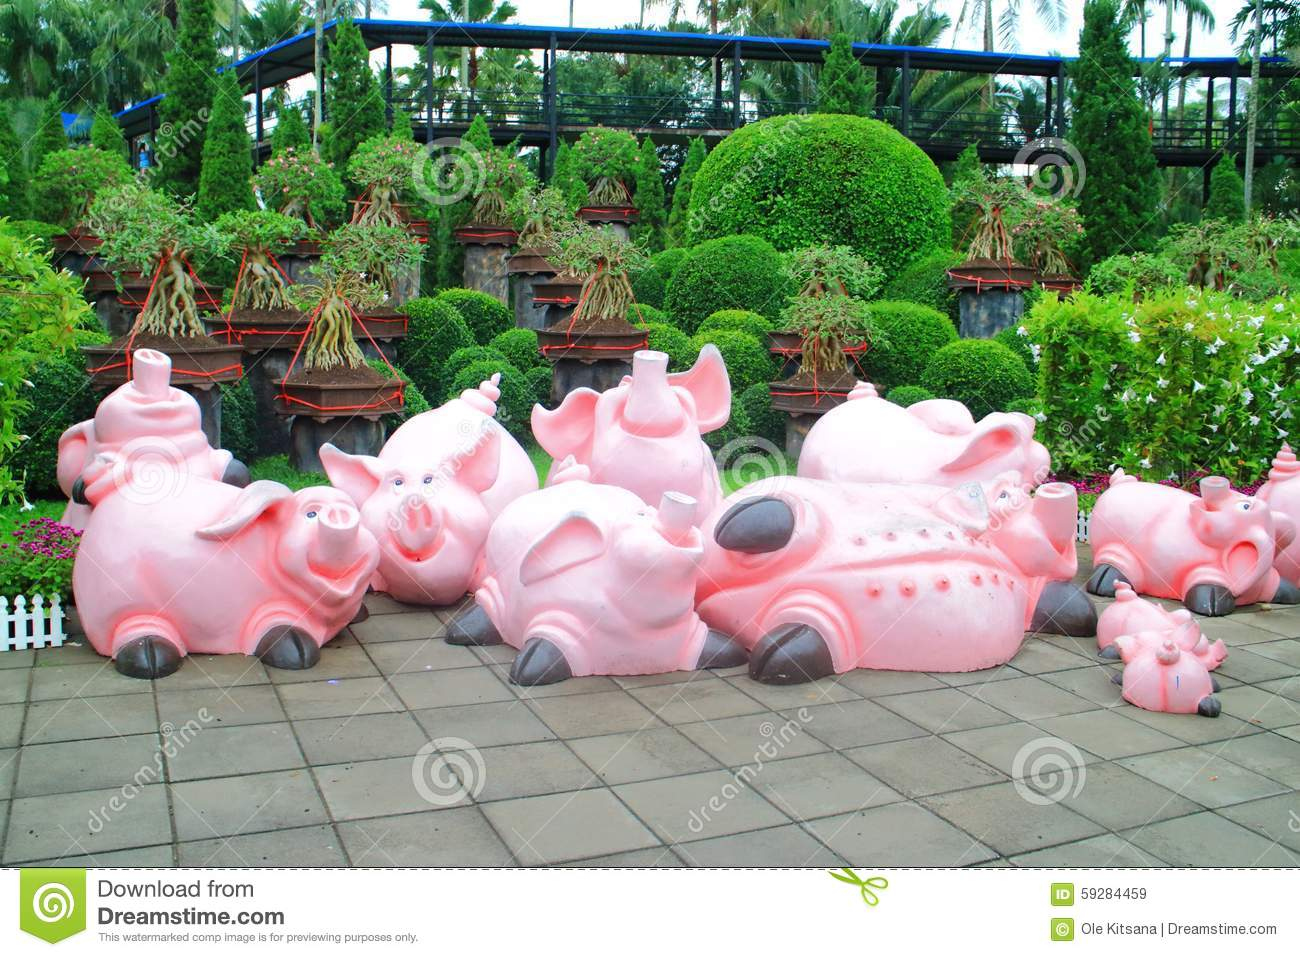 Charmant Download Pig Statue In Garden Stock Image. Image Of Image, Cute   59284459